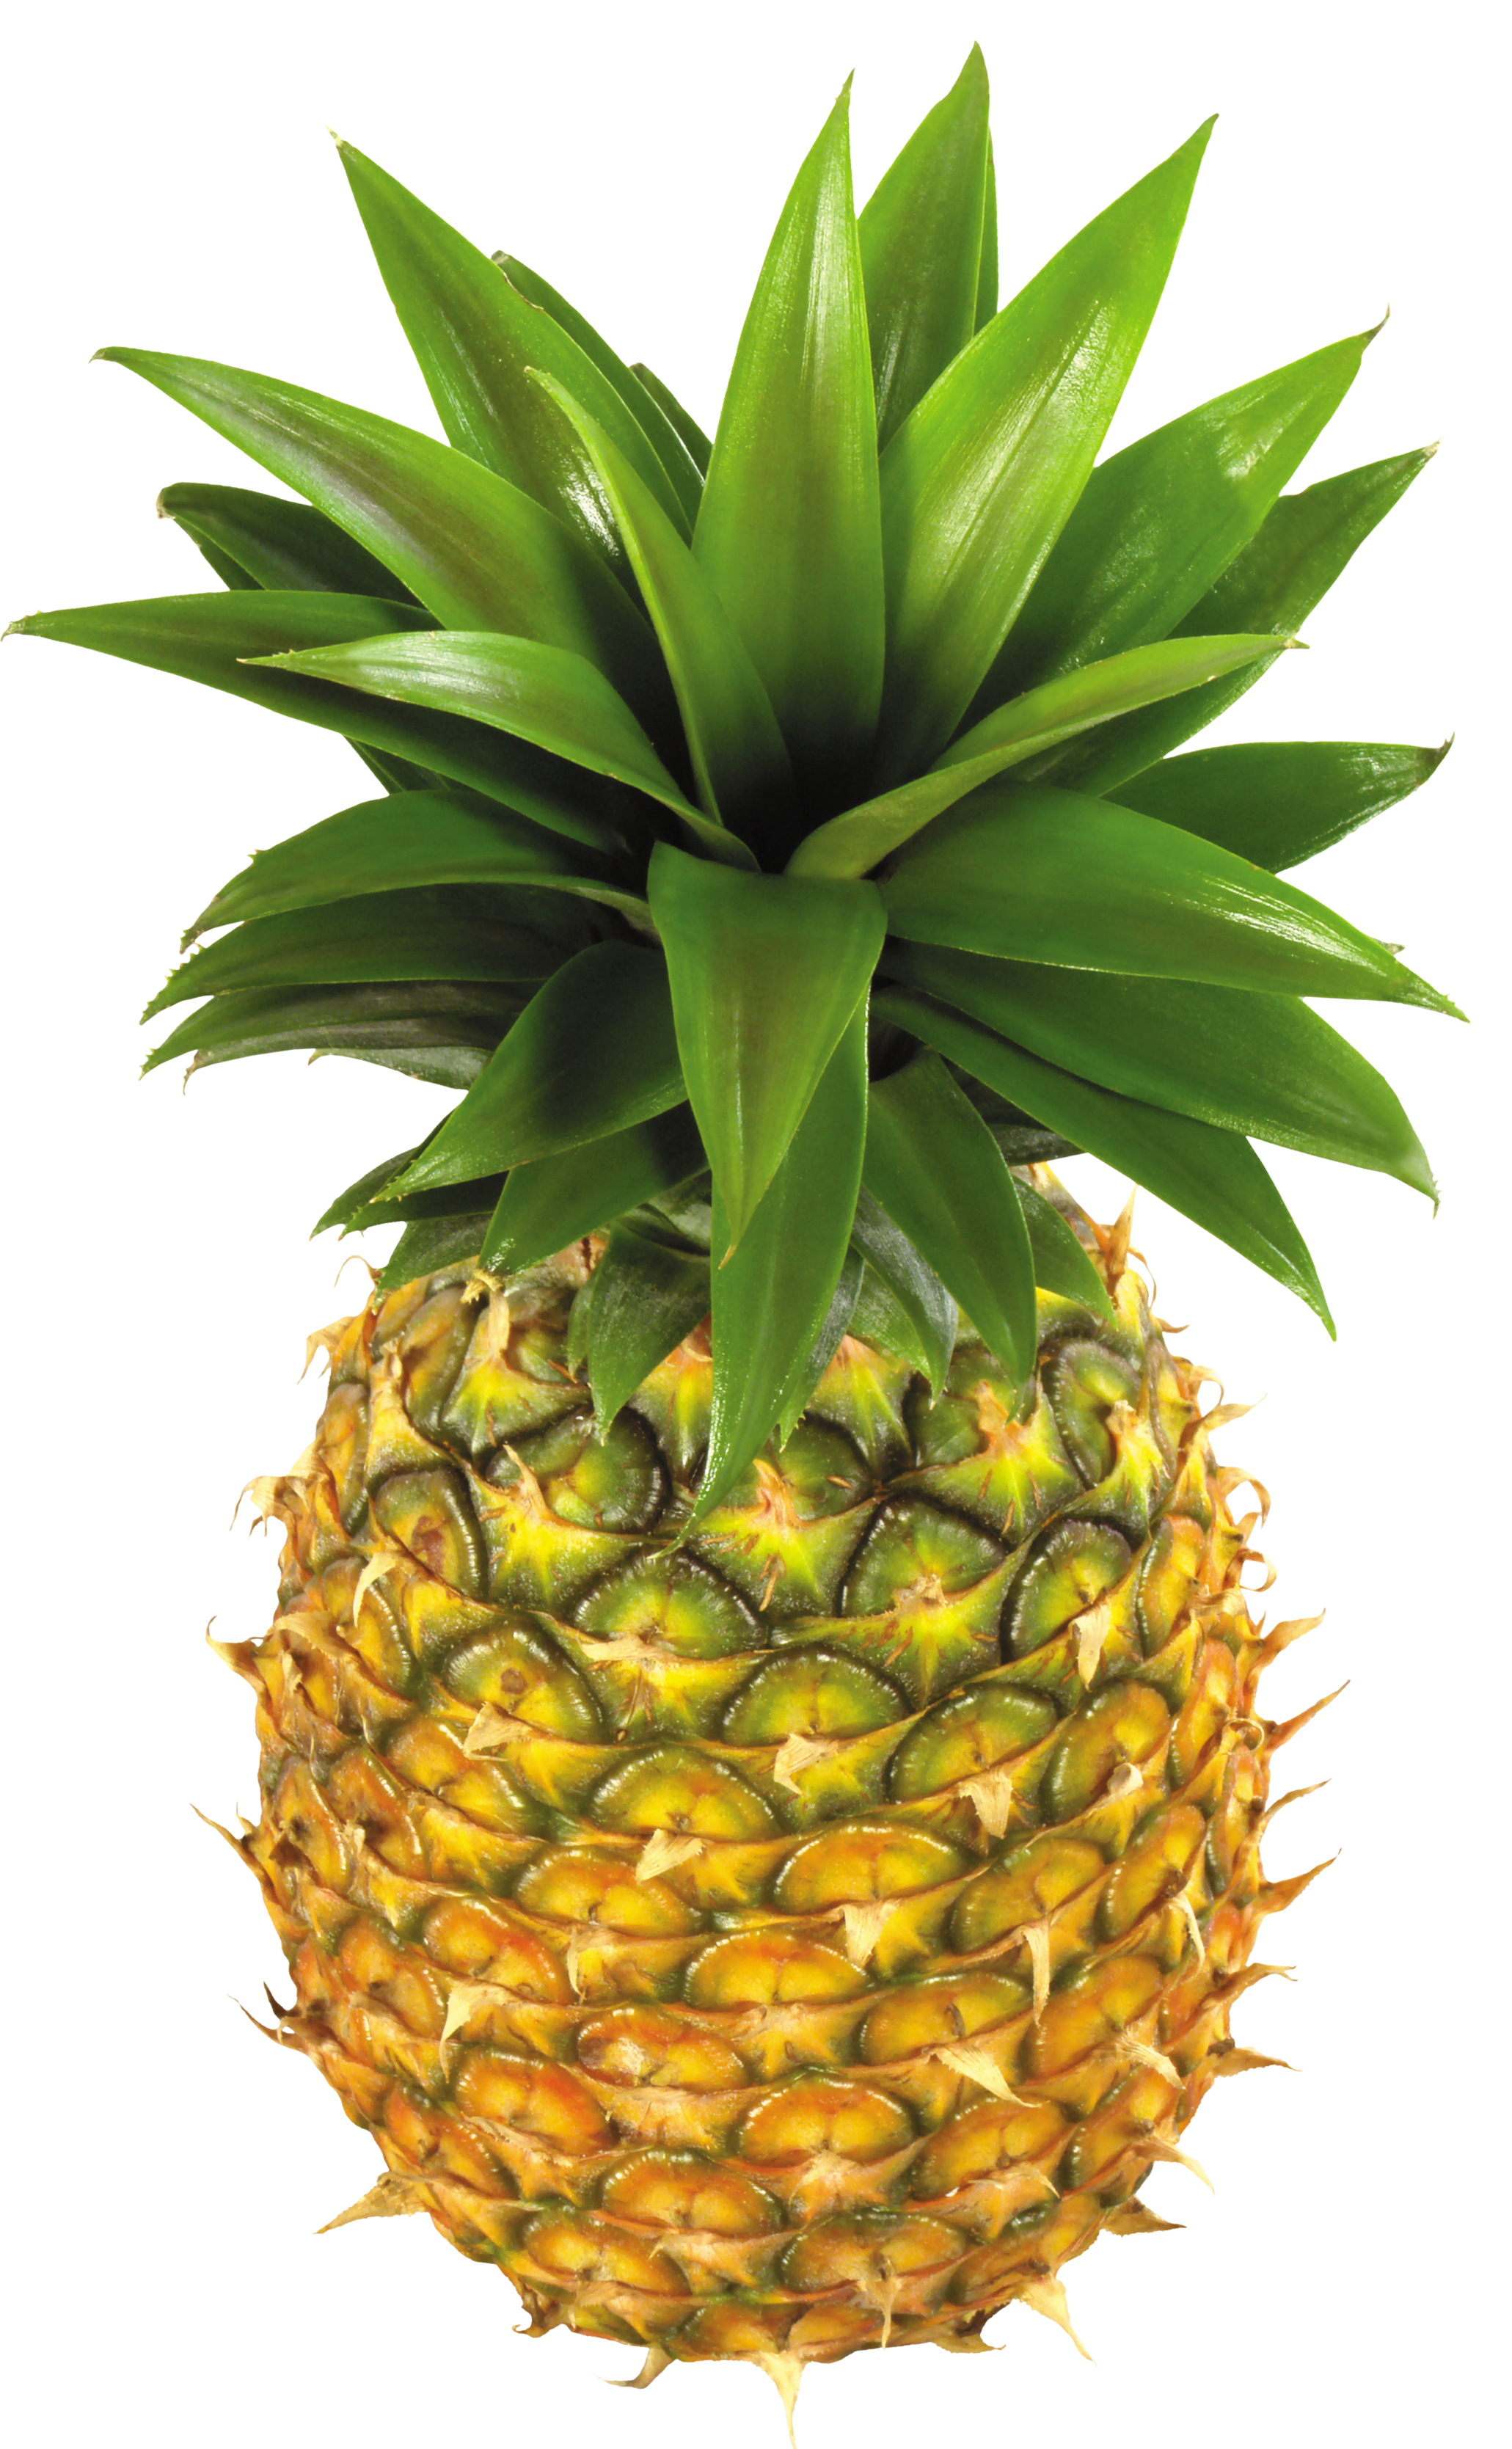 Pineapple flower clipart picture black and white download pineapple clip art free clipart images pineapple 2 | Hospsitality ... picture black and white download